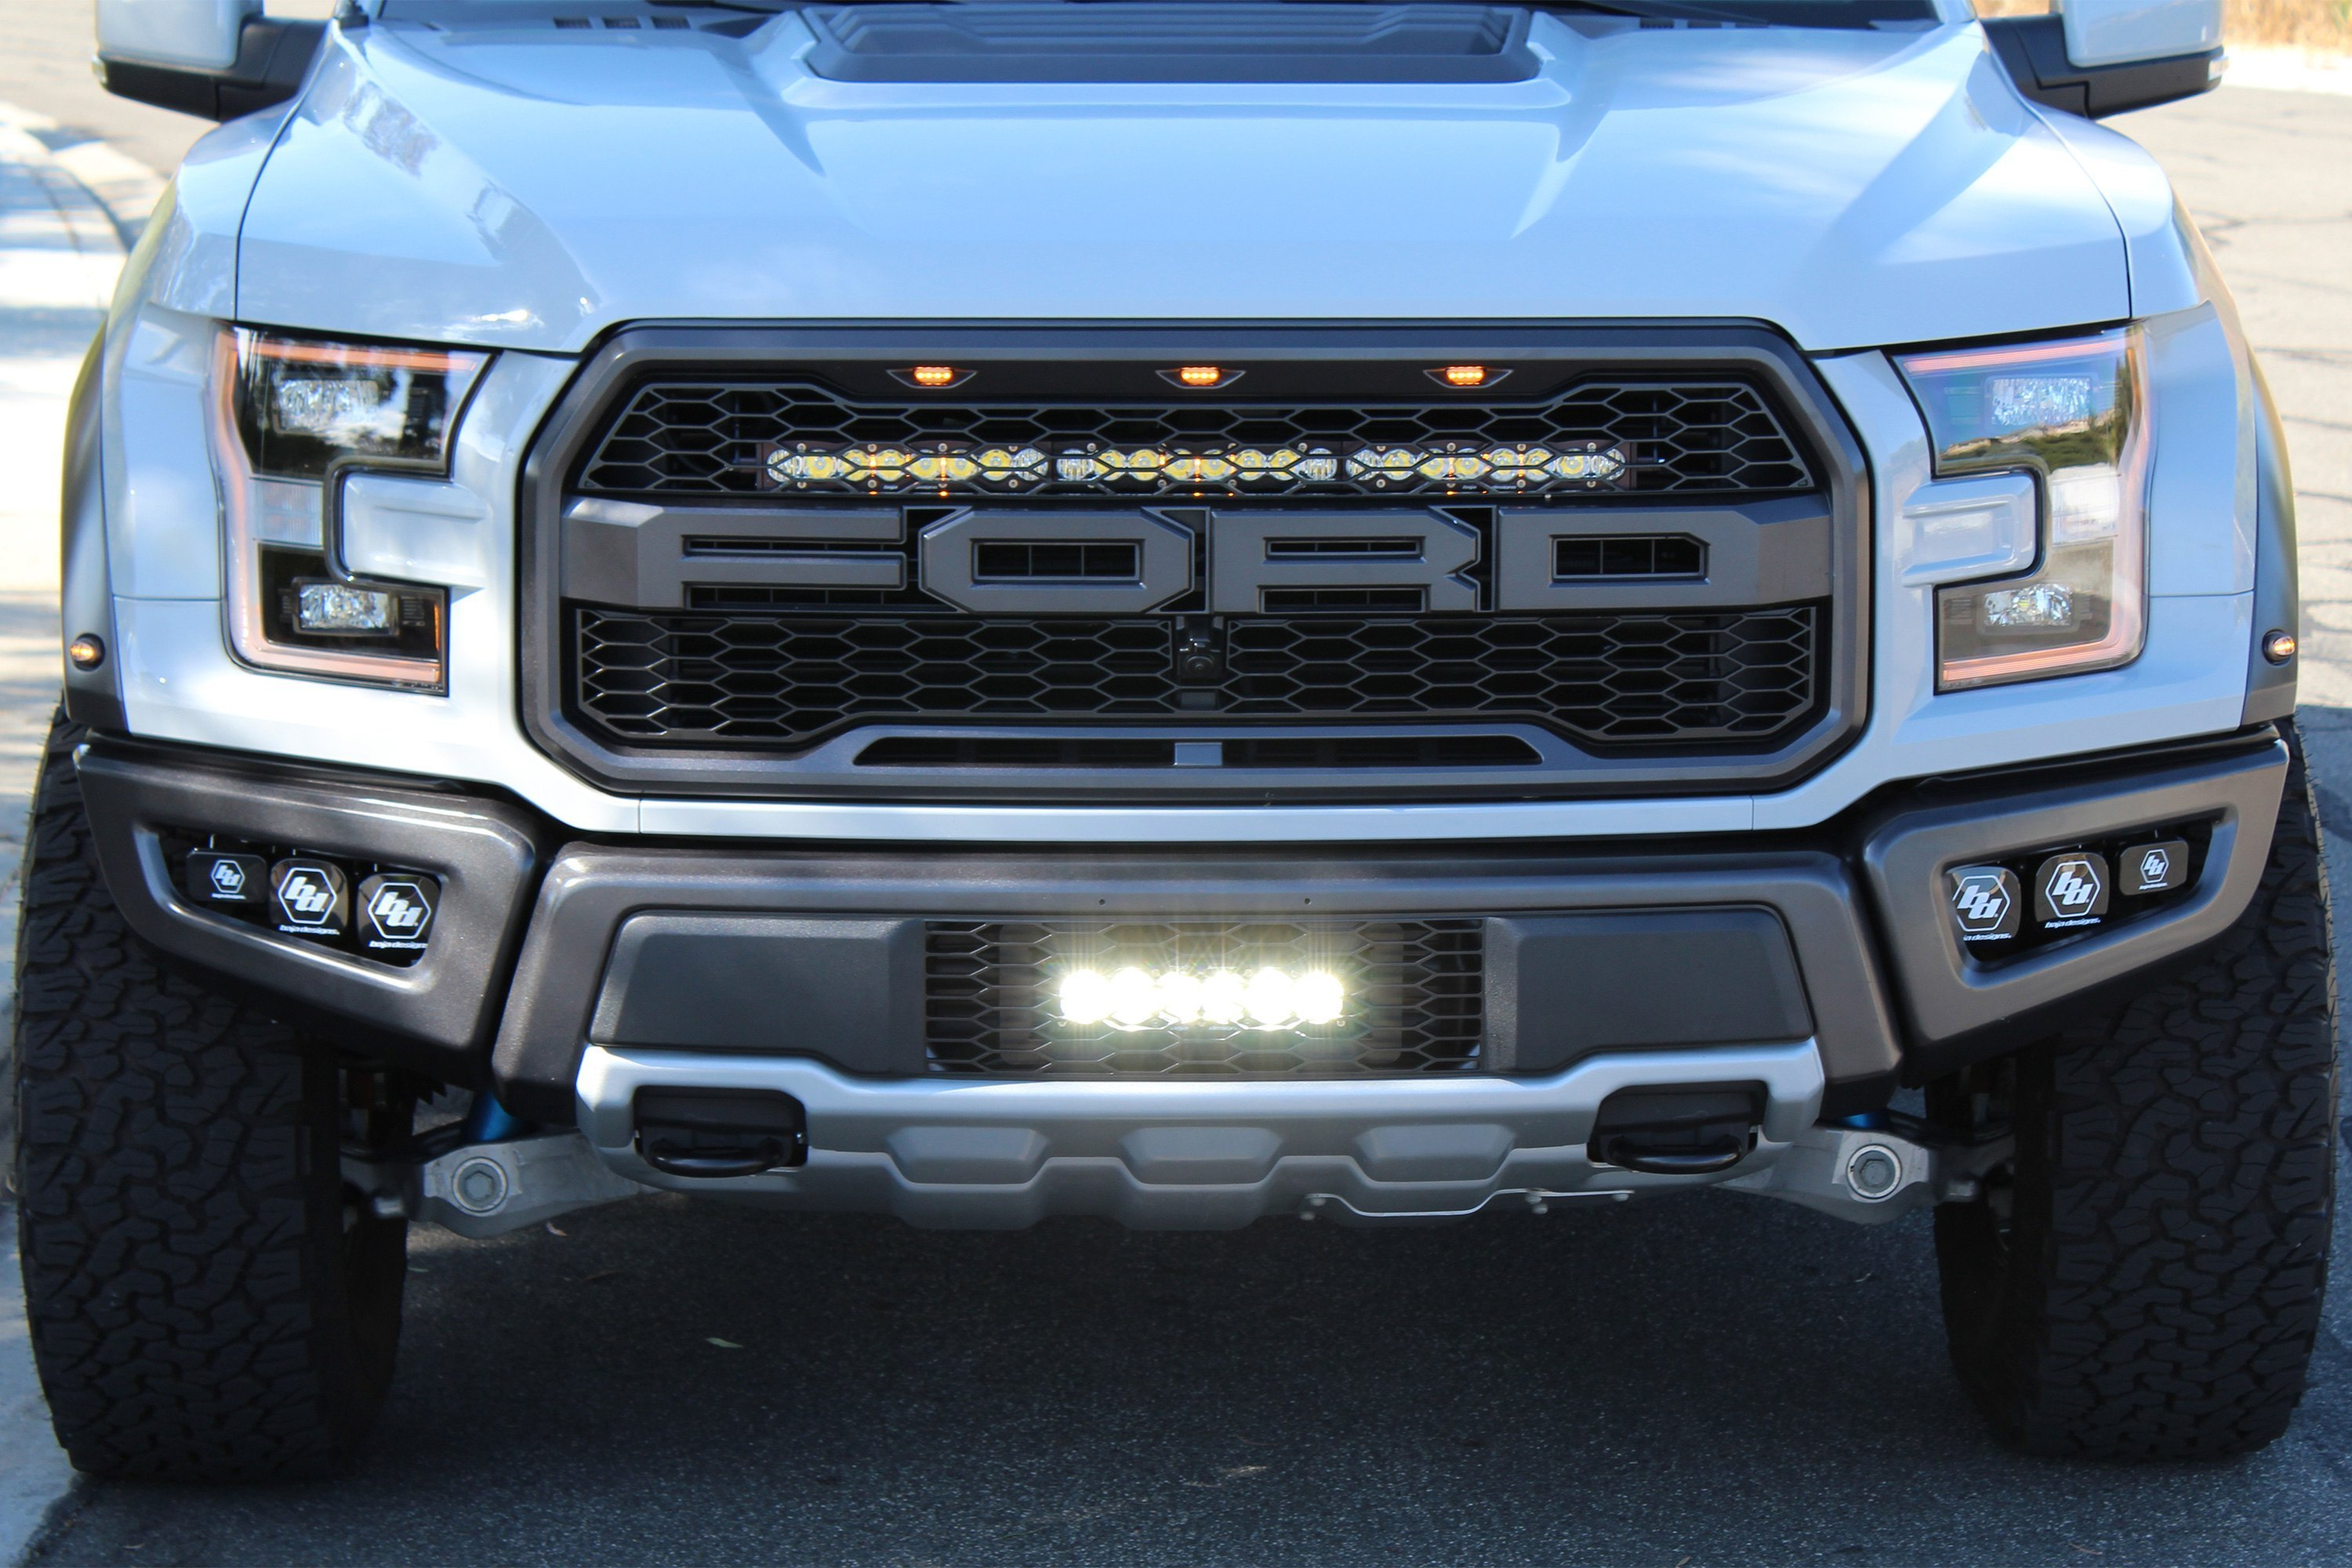 44 7561 installed 2 baja designs® 44 7561 grille mounted s8™ 30\